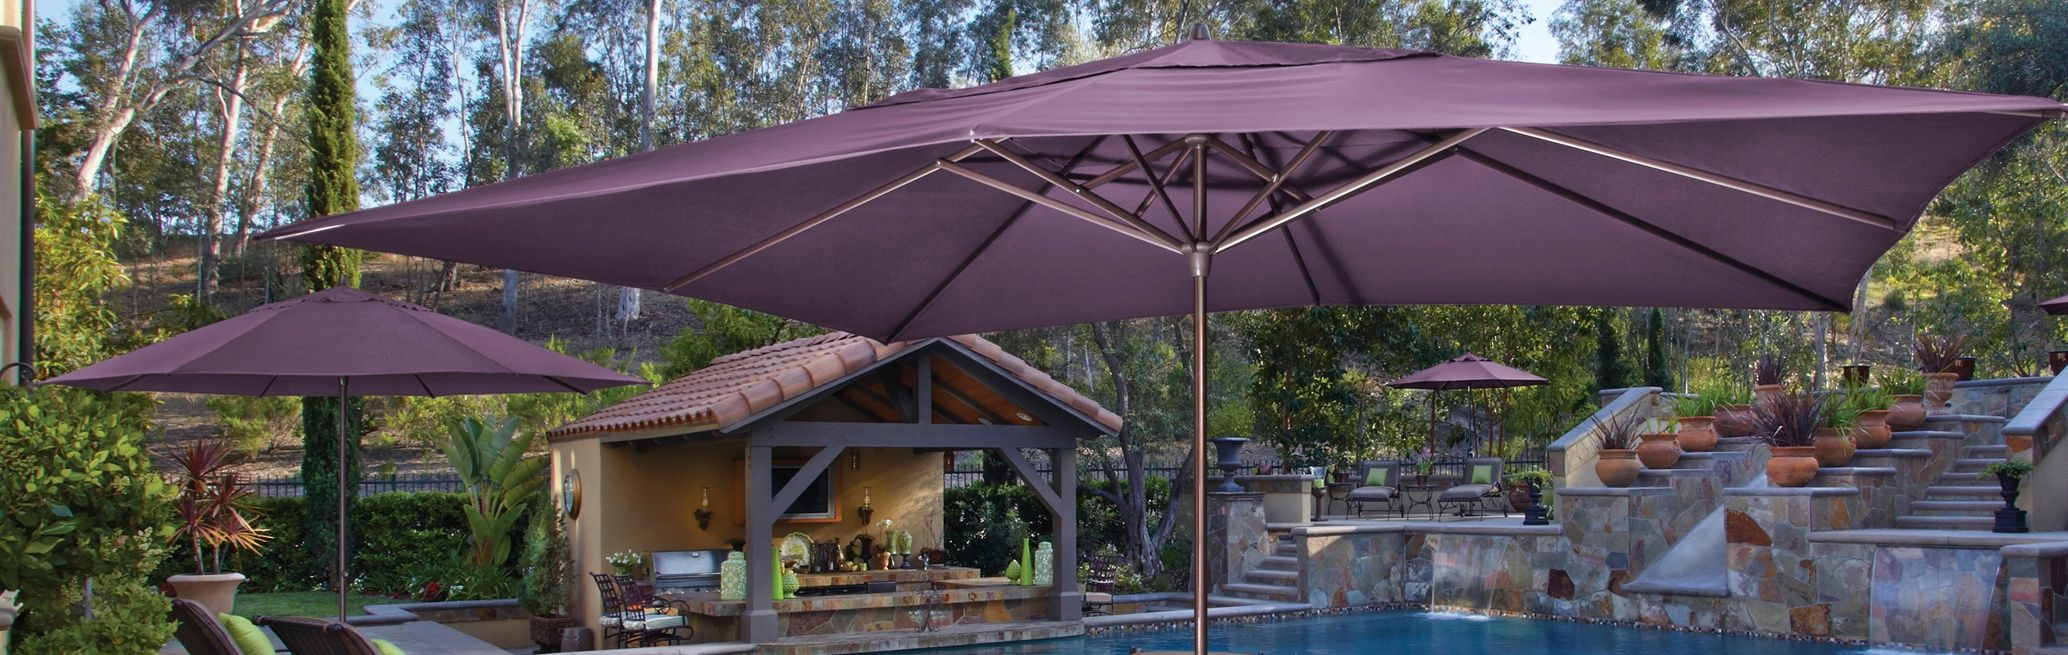 Find Your Perfect Patio Umbrella. Use Our Guide To Help Understand The  Different Types Of